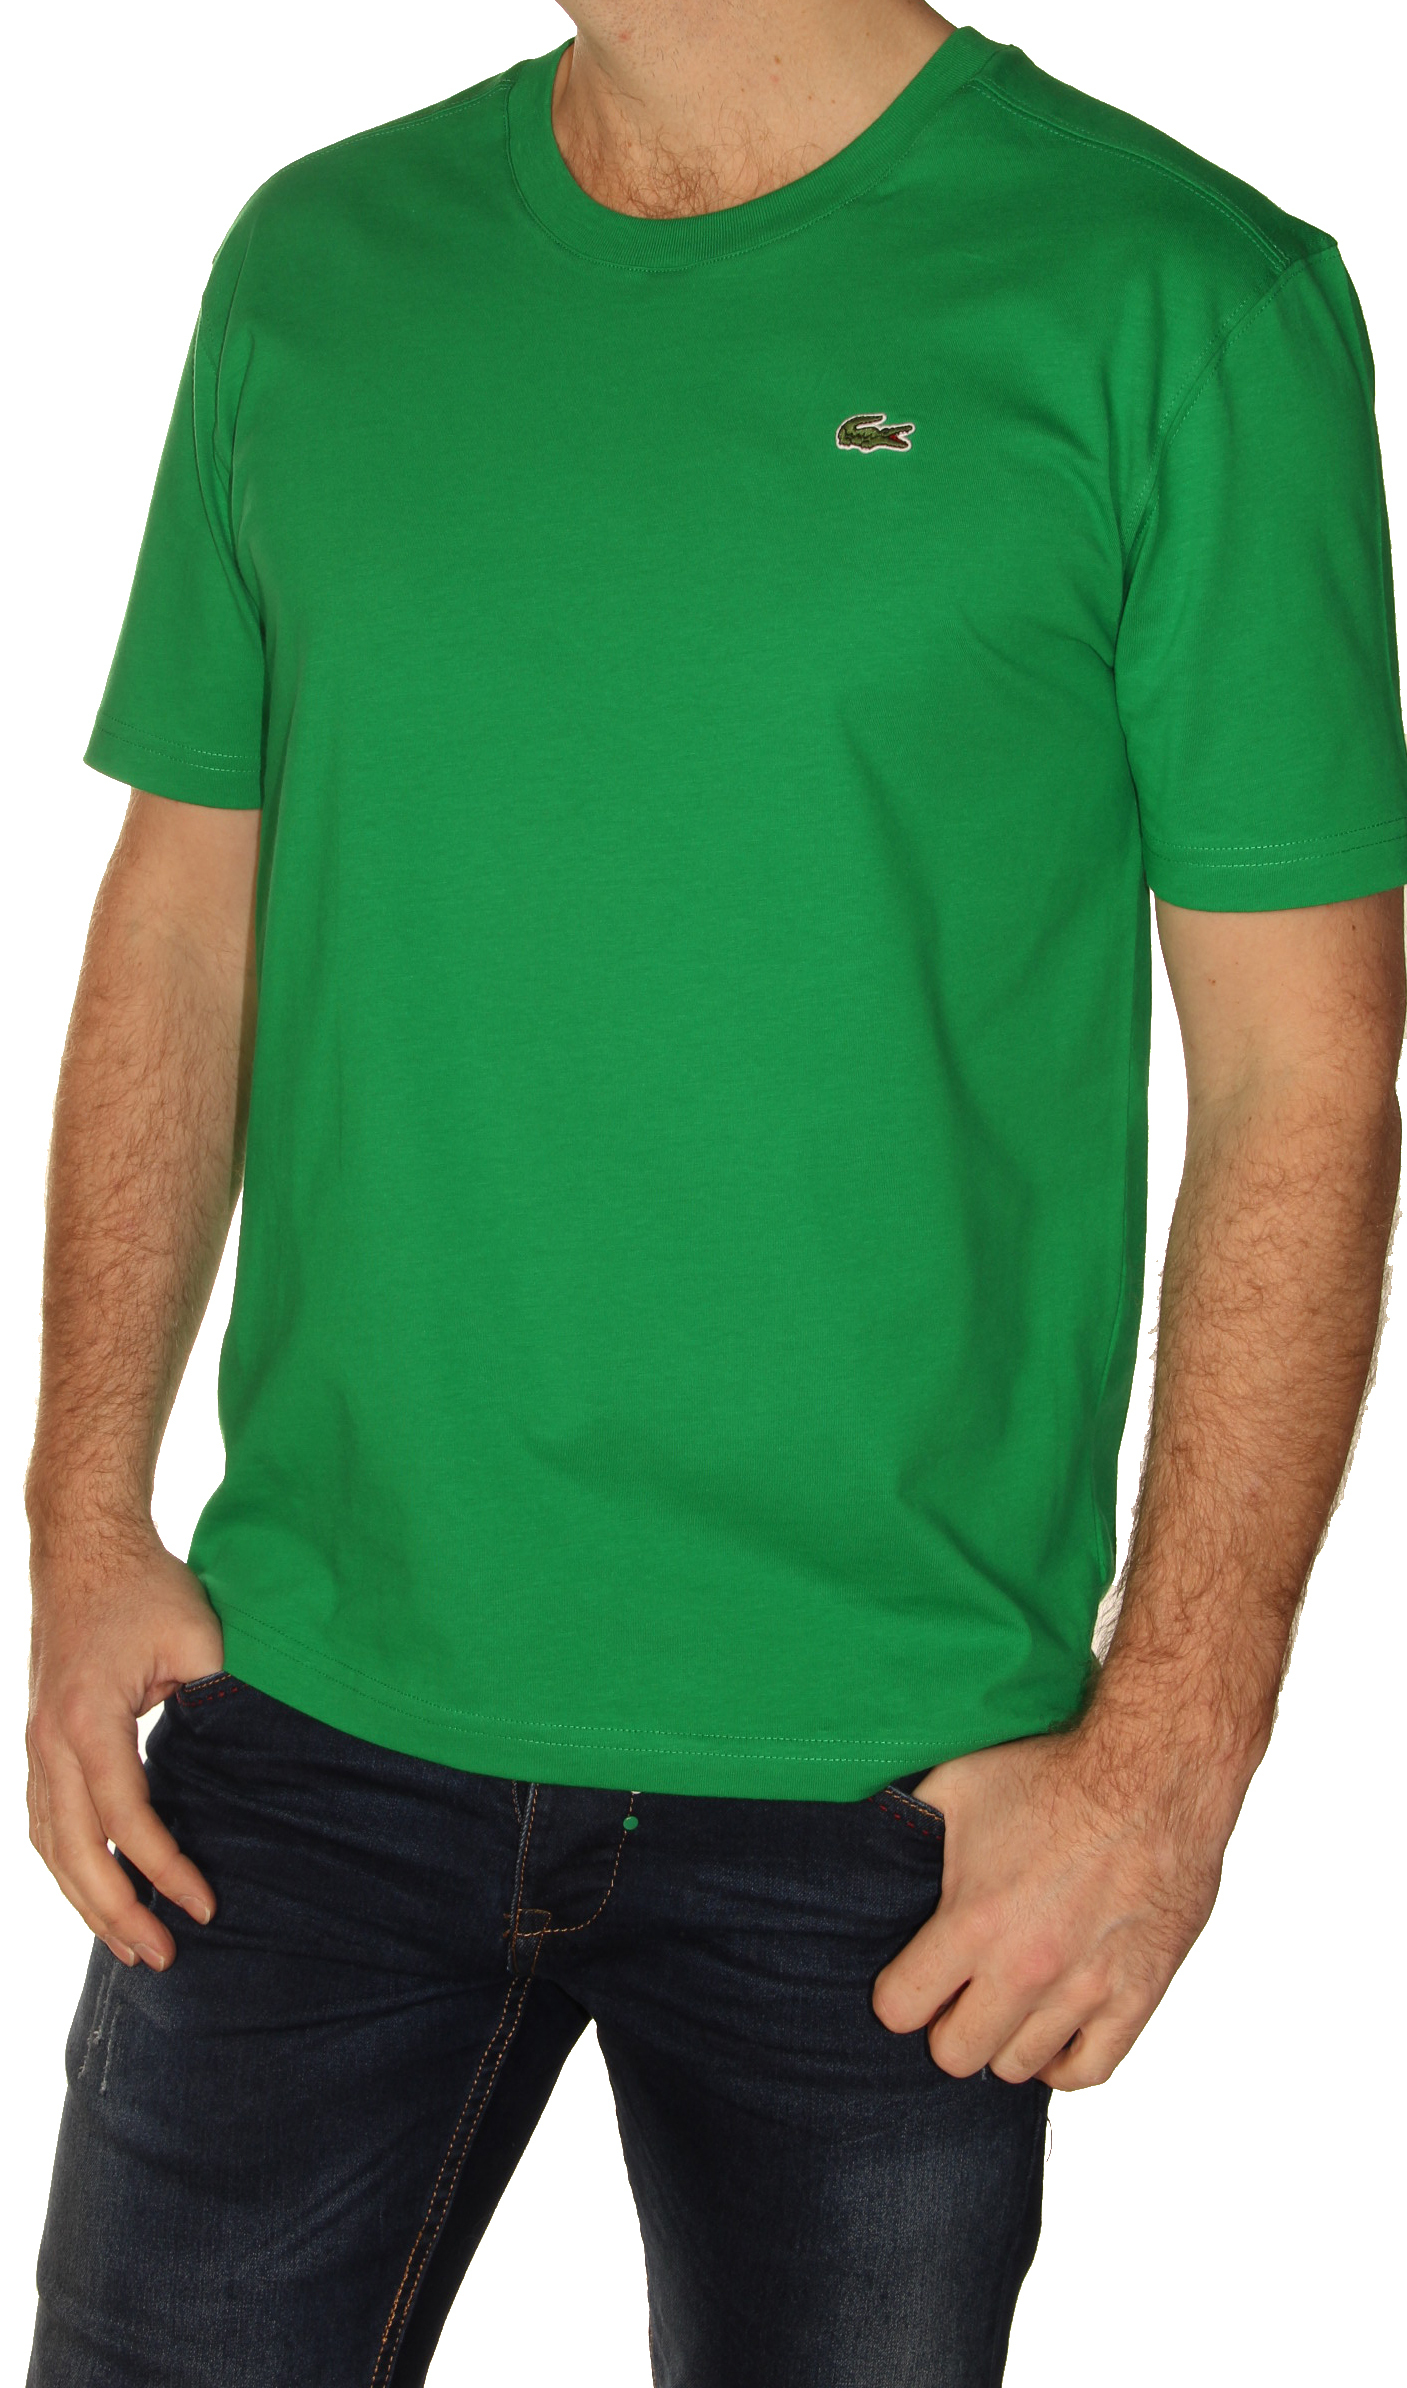 upload/product_display_image/201302/lacoste_th7420_chilorophylle_a.jpg